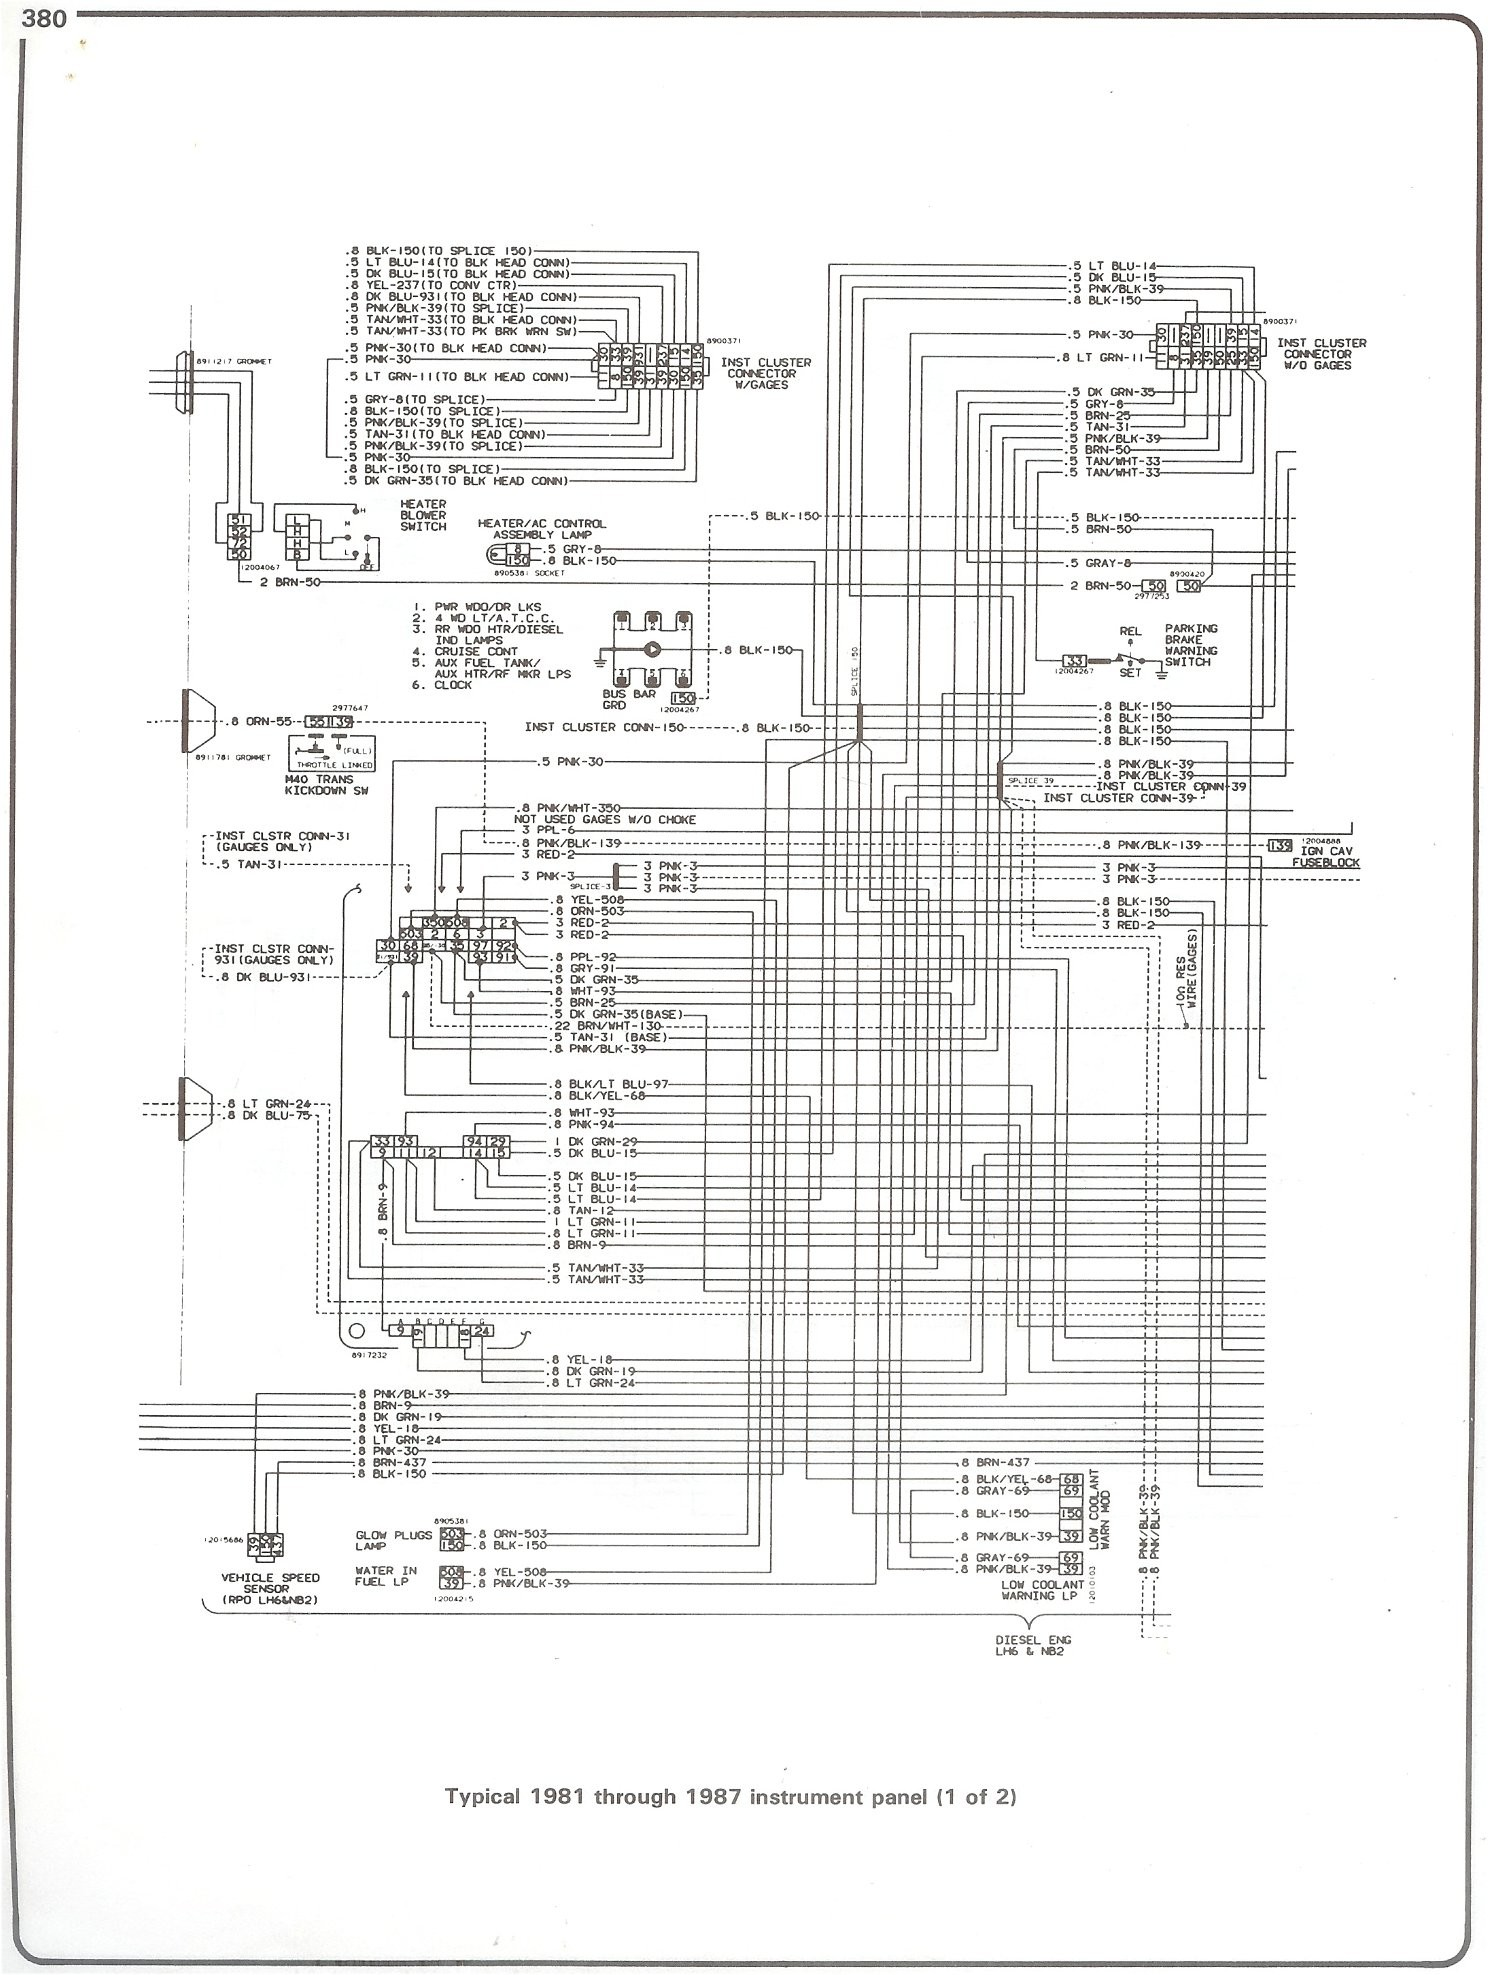 wiring diagram 1986 k 5 chevy online wiring diagram1986 chevy truck wiring harness wiring diagram de 1974 monte carlo wiring diagram 1978 chevy truck